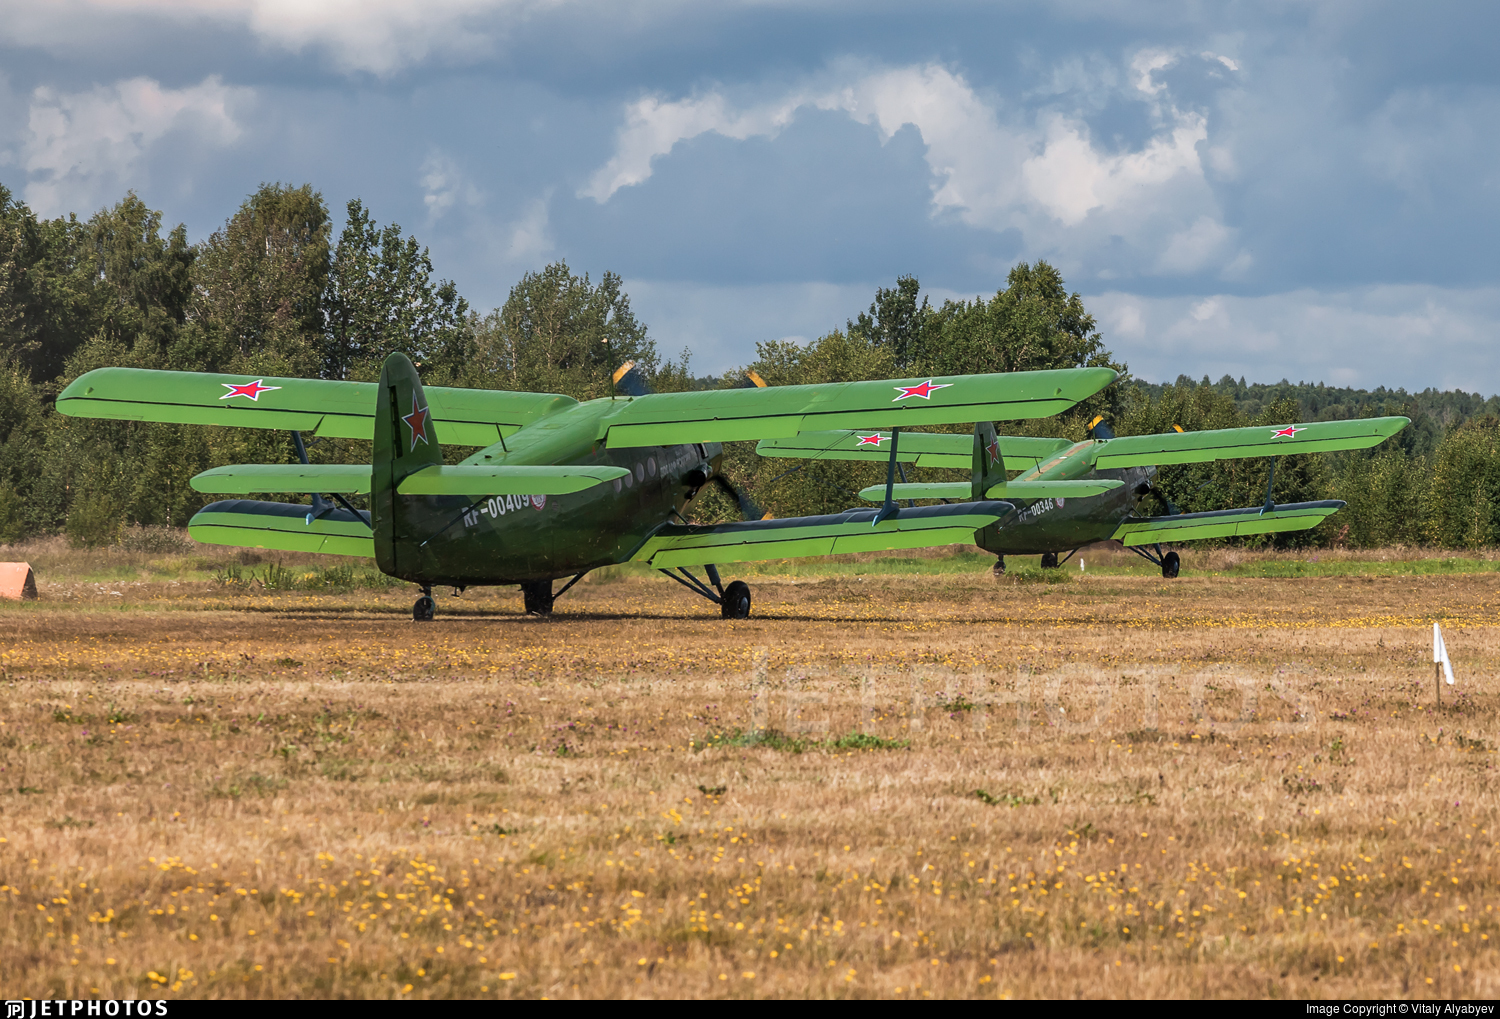 RF-00409 - PZL-Mielec An-2T - Russia - Voluntary Society for Assistance to the Army, Air Force and Navy (DOSAAF)